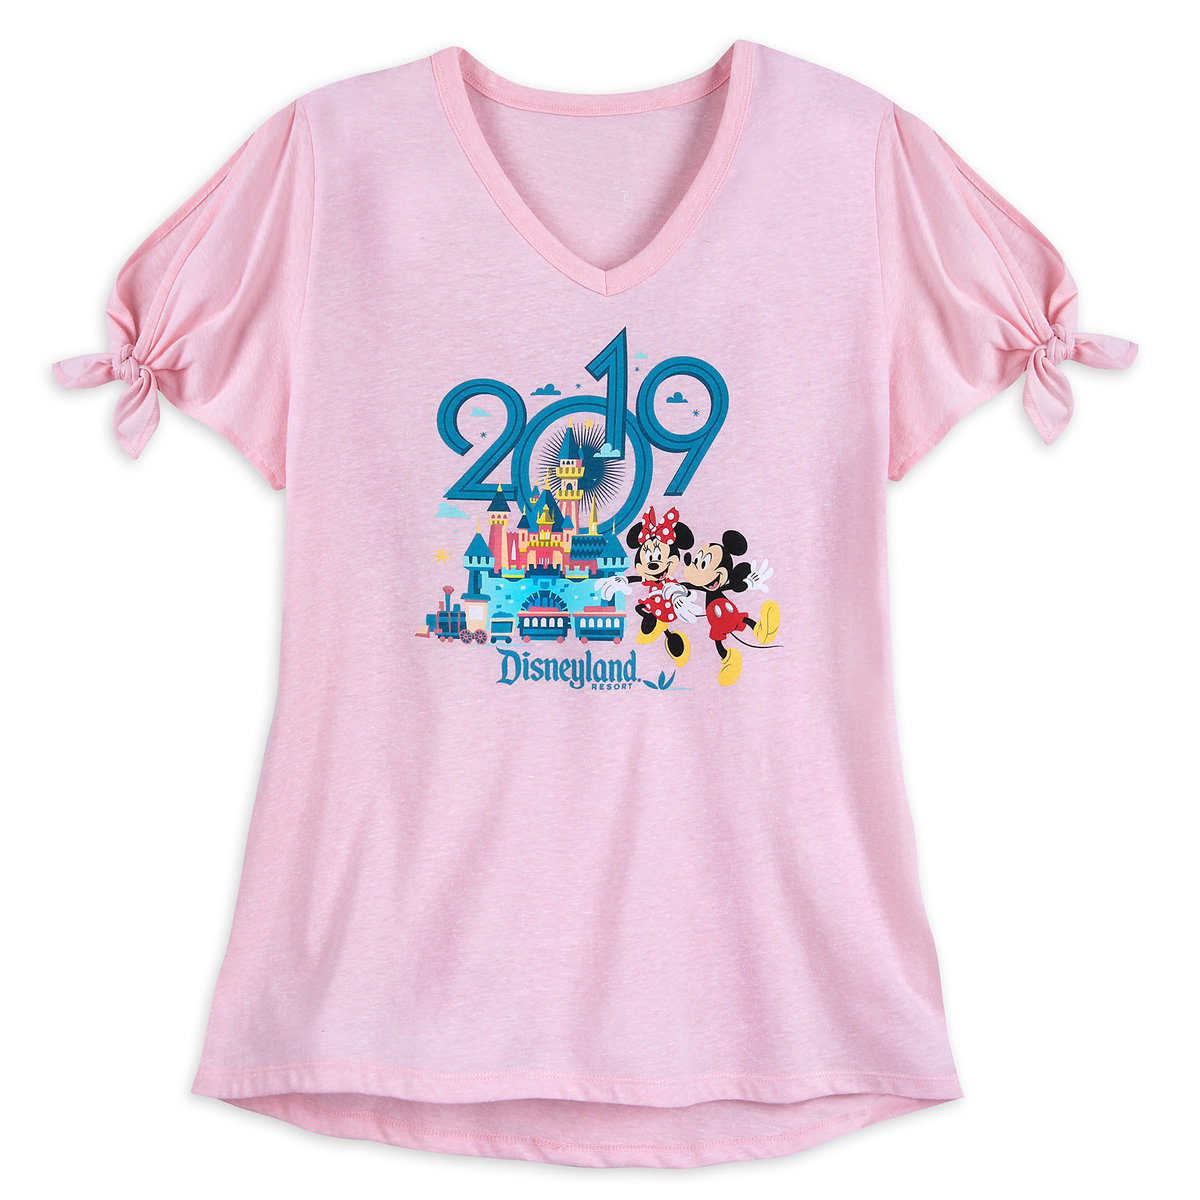 5b46605f Product Image of Mickey and Minnie Mouse T-Shirt for Women - Disneyland  2019 #